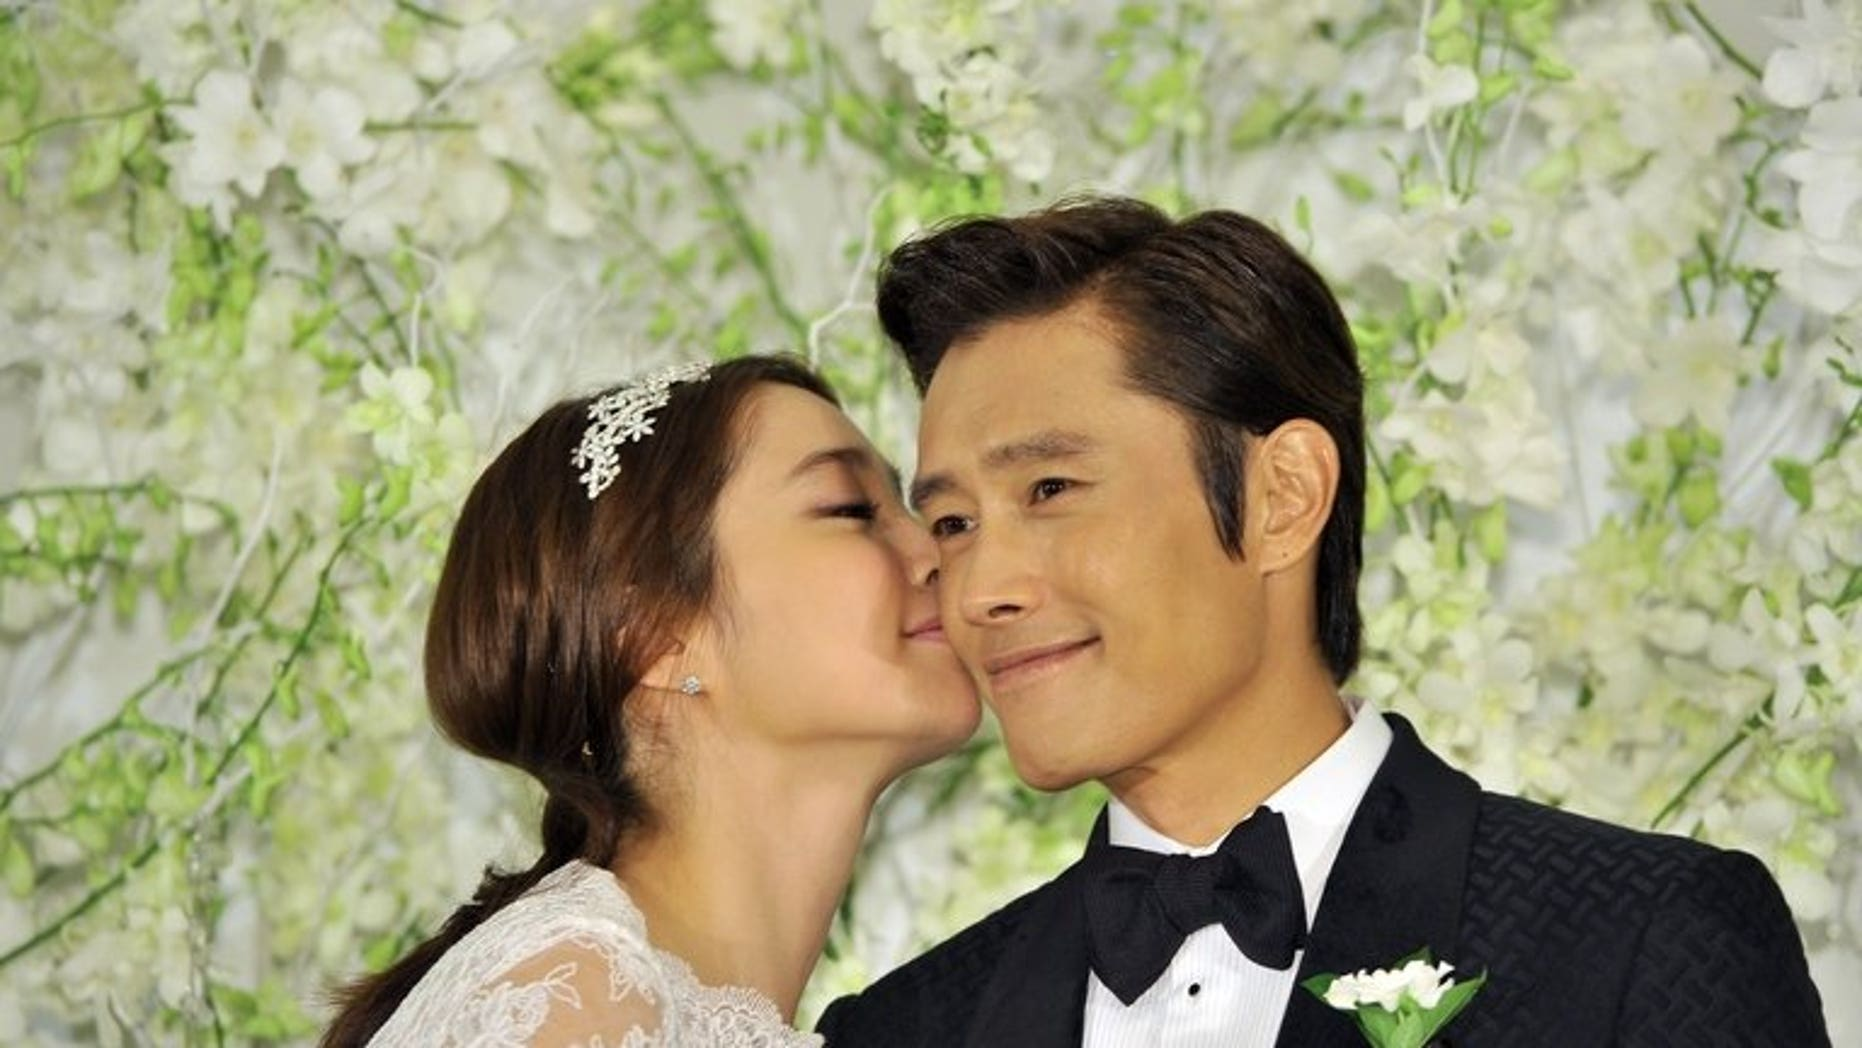 """South Korean actor Lee Byung-Hun poses with actress Lee Min-Jung during a press conference before their wedding in Seoul, on August 10, 2013. Lee Byung-Hun is one of the best known faces of the """"Korean Wave"""" of popular culture."""